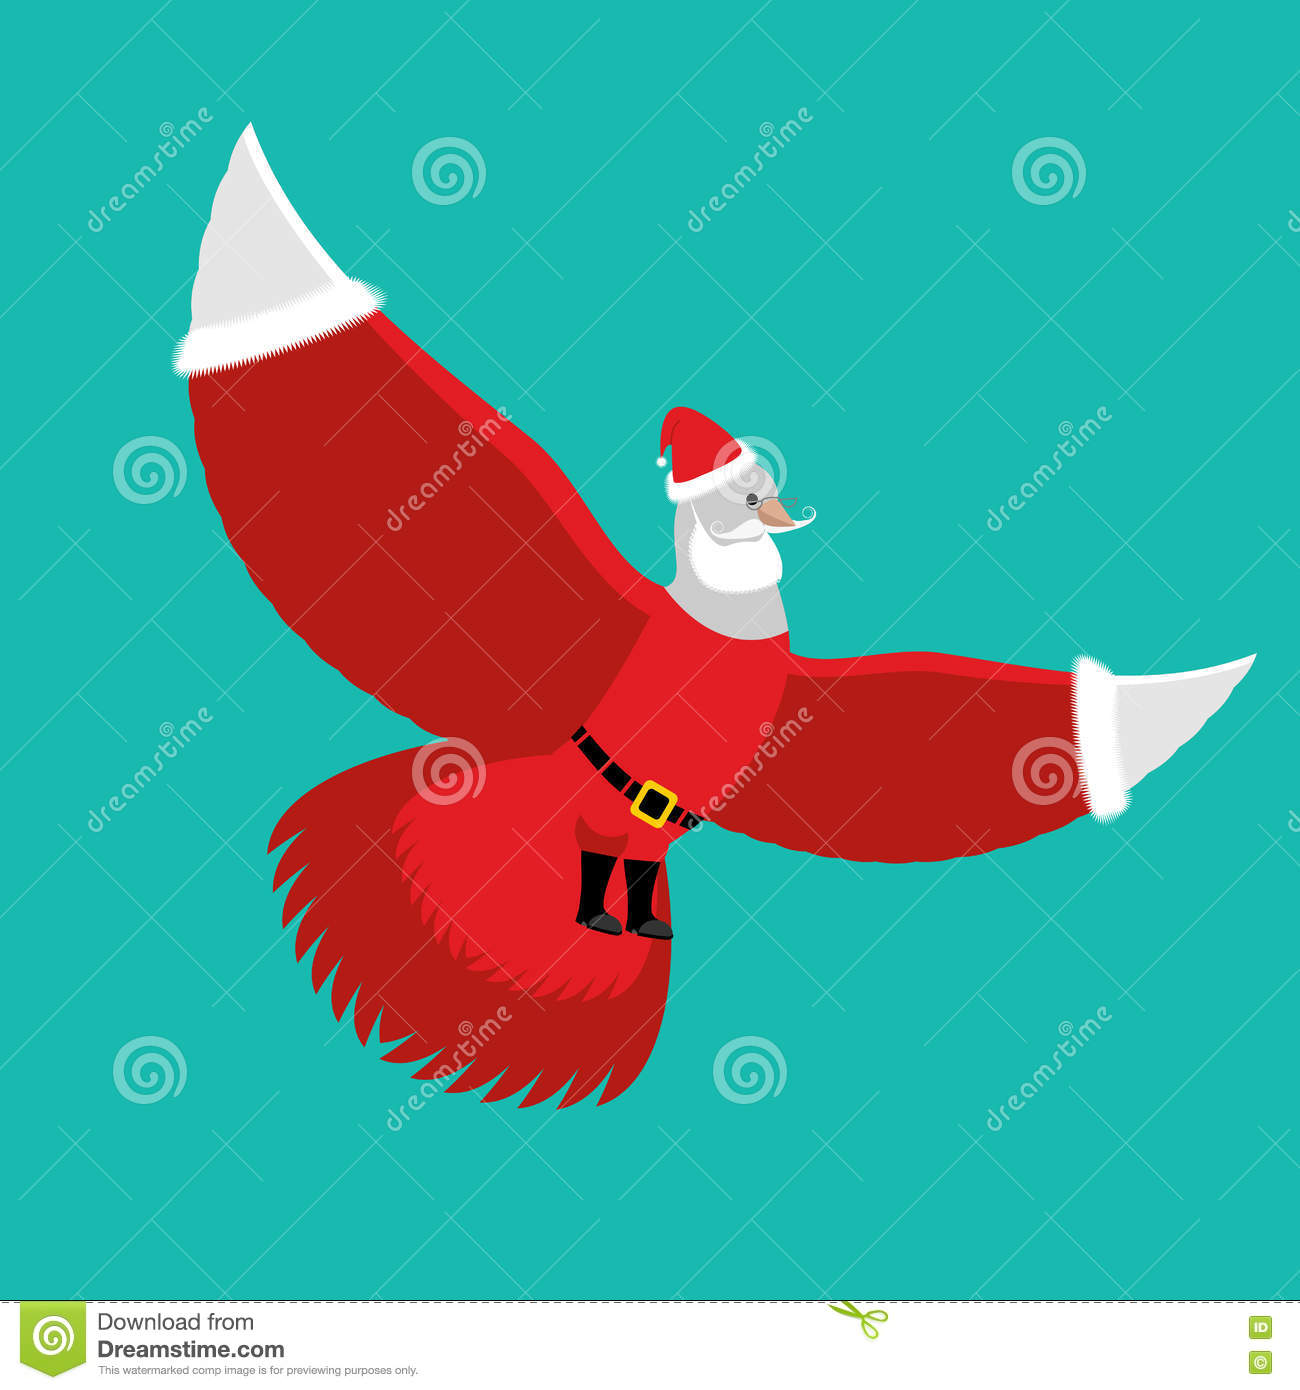 dove santa claus white pigeon in red costume and cap stock image - Santa Claus Red